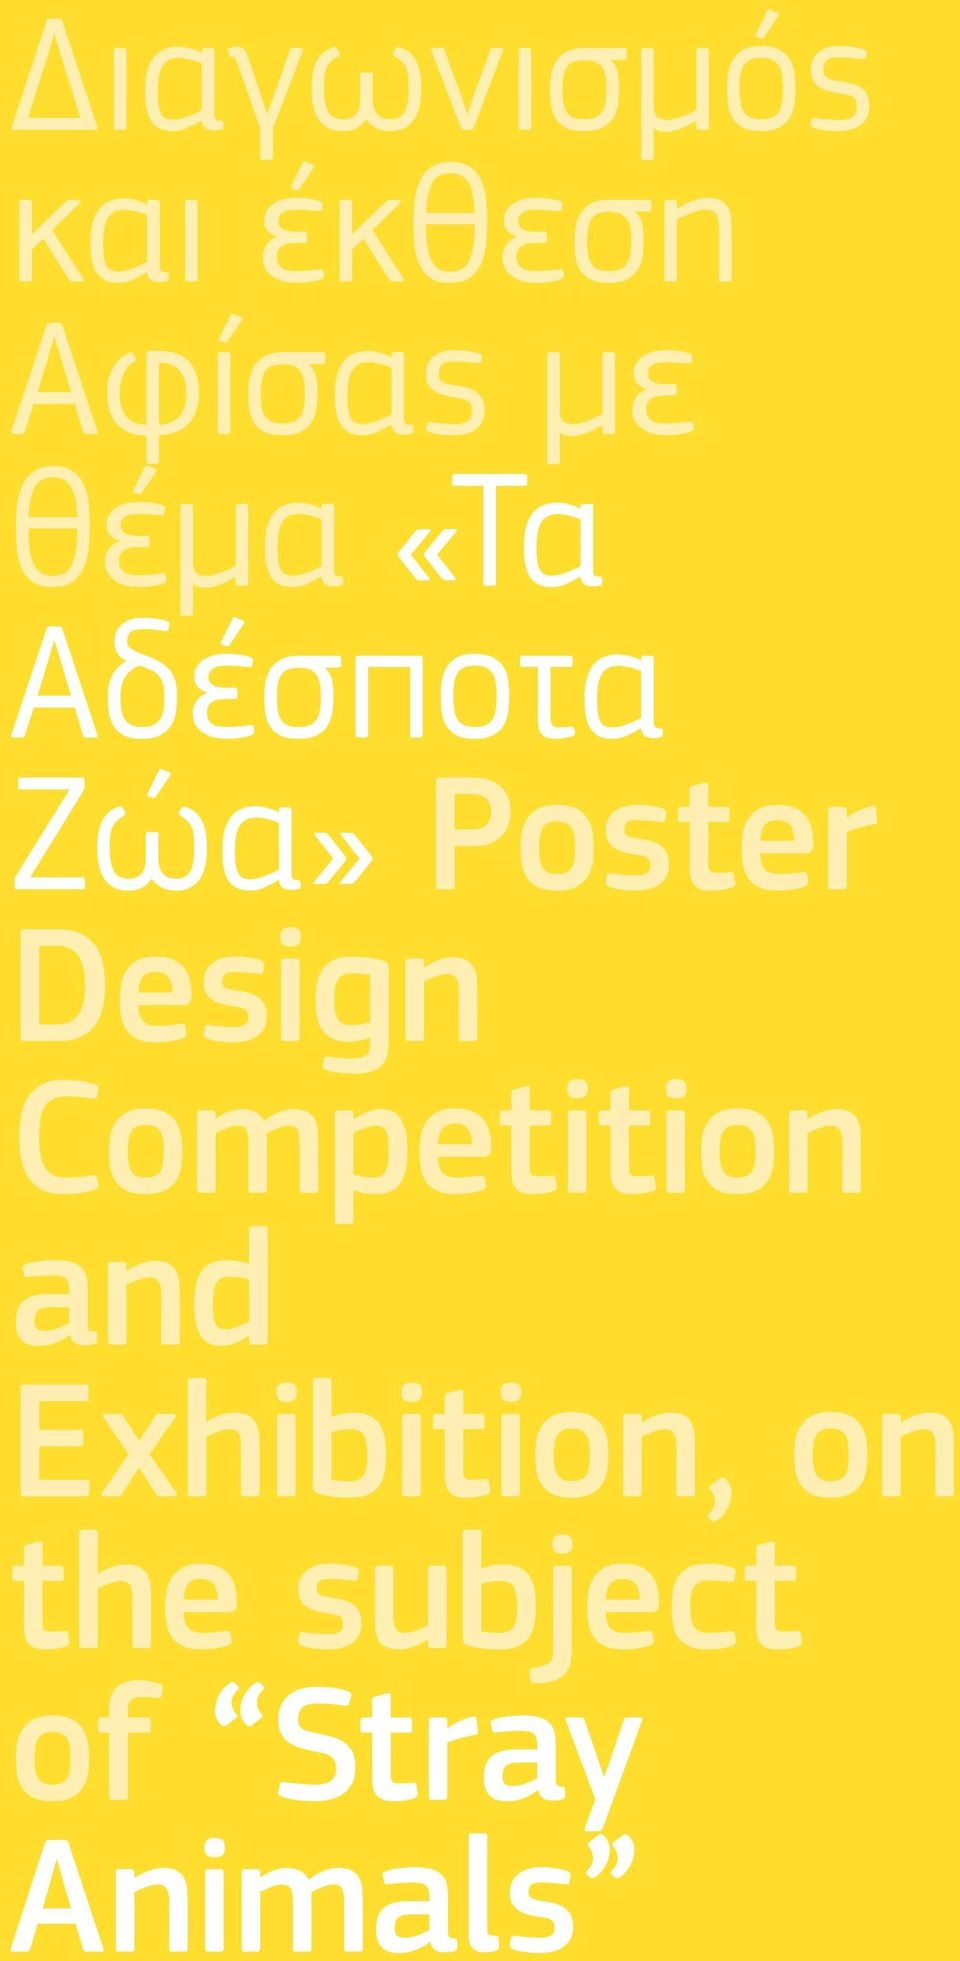 Design Competition and